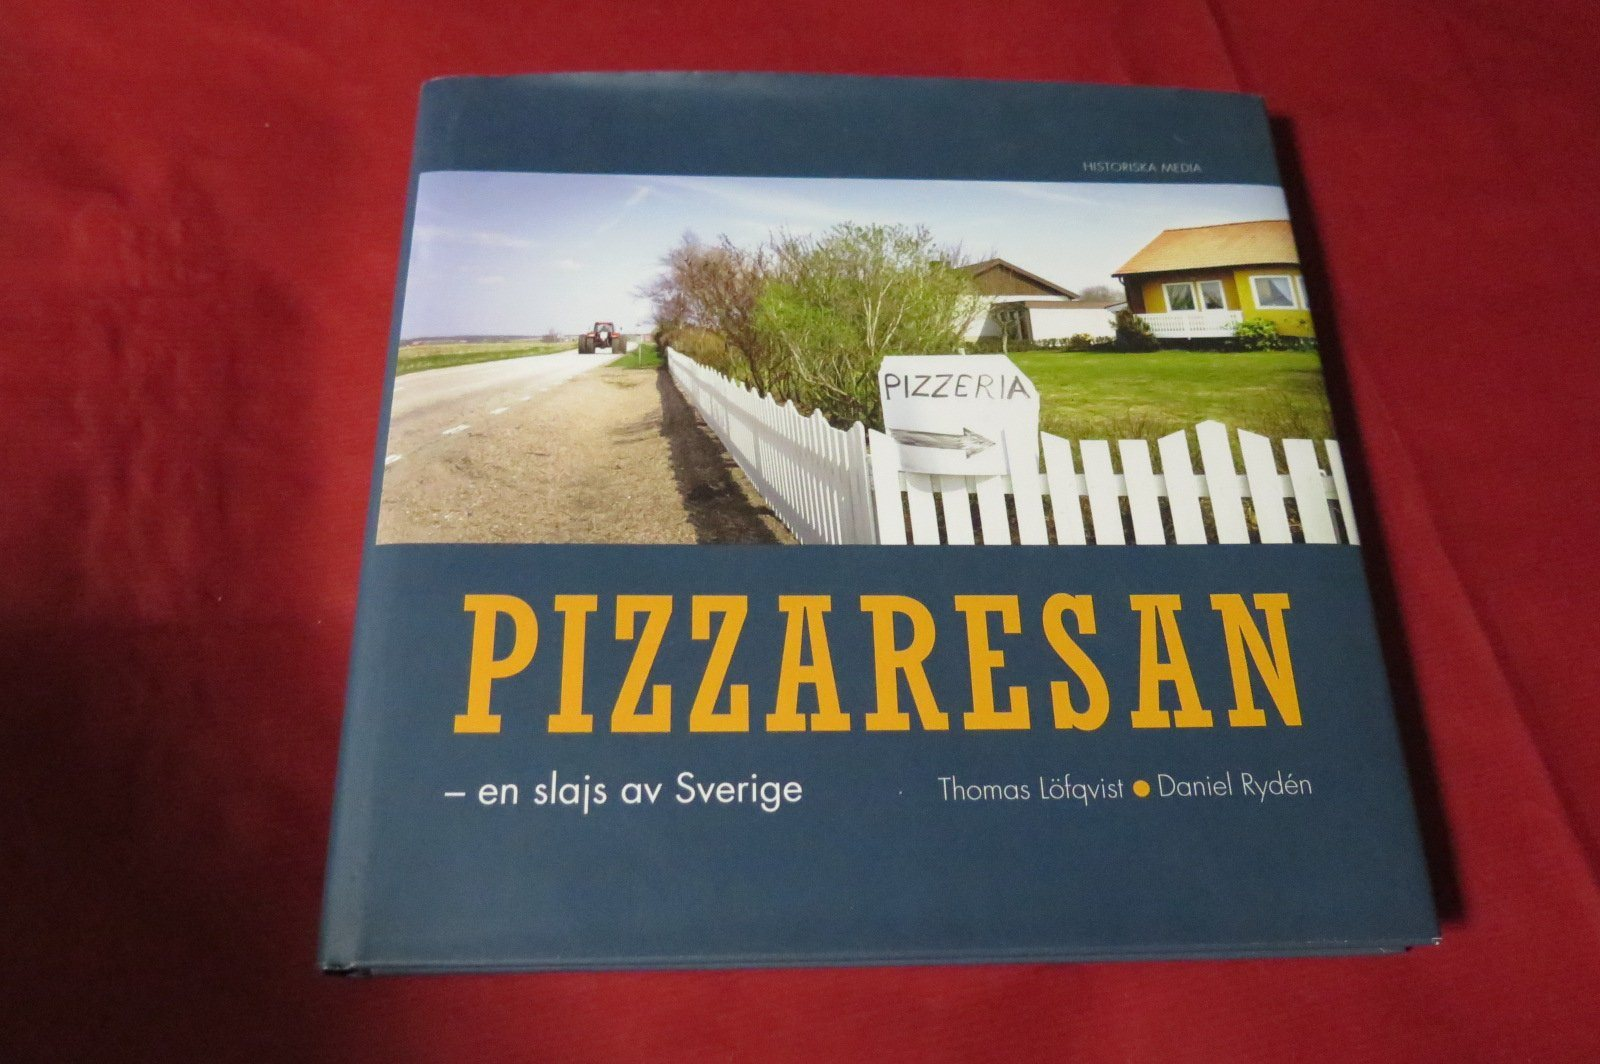 Pizzaresan Pizza Thomas Lofqvist Daniel Ryden R 341193806